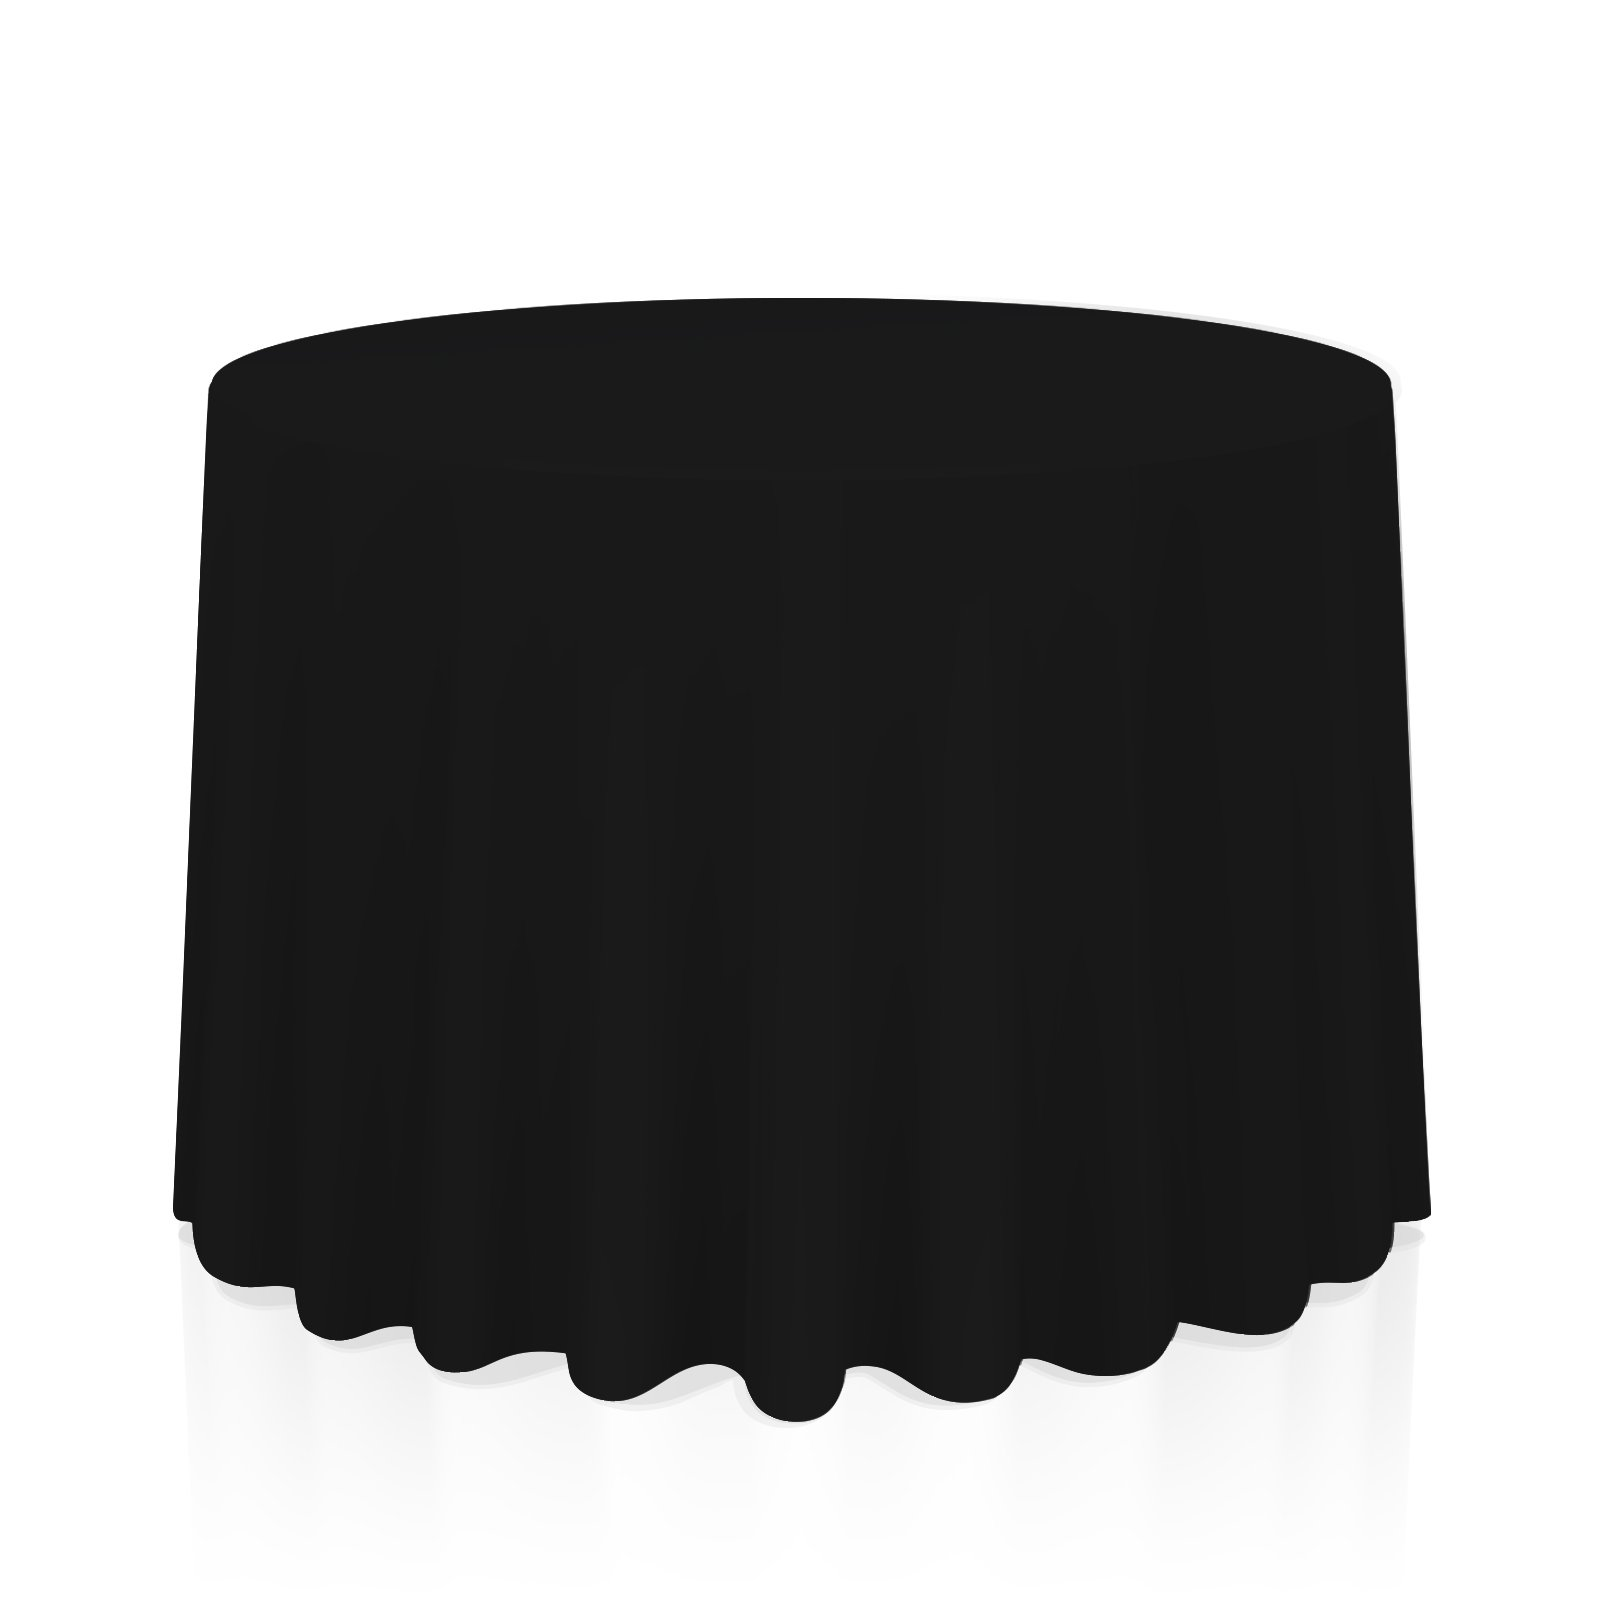 Lann's Linens - 10 Premium 120'' Round Tablecloths for Wedding/Banquet/Restaurant - Polyester Fabric Table Cloths - Black by Lann's Linens